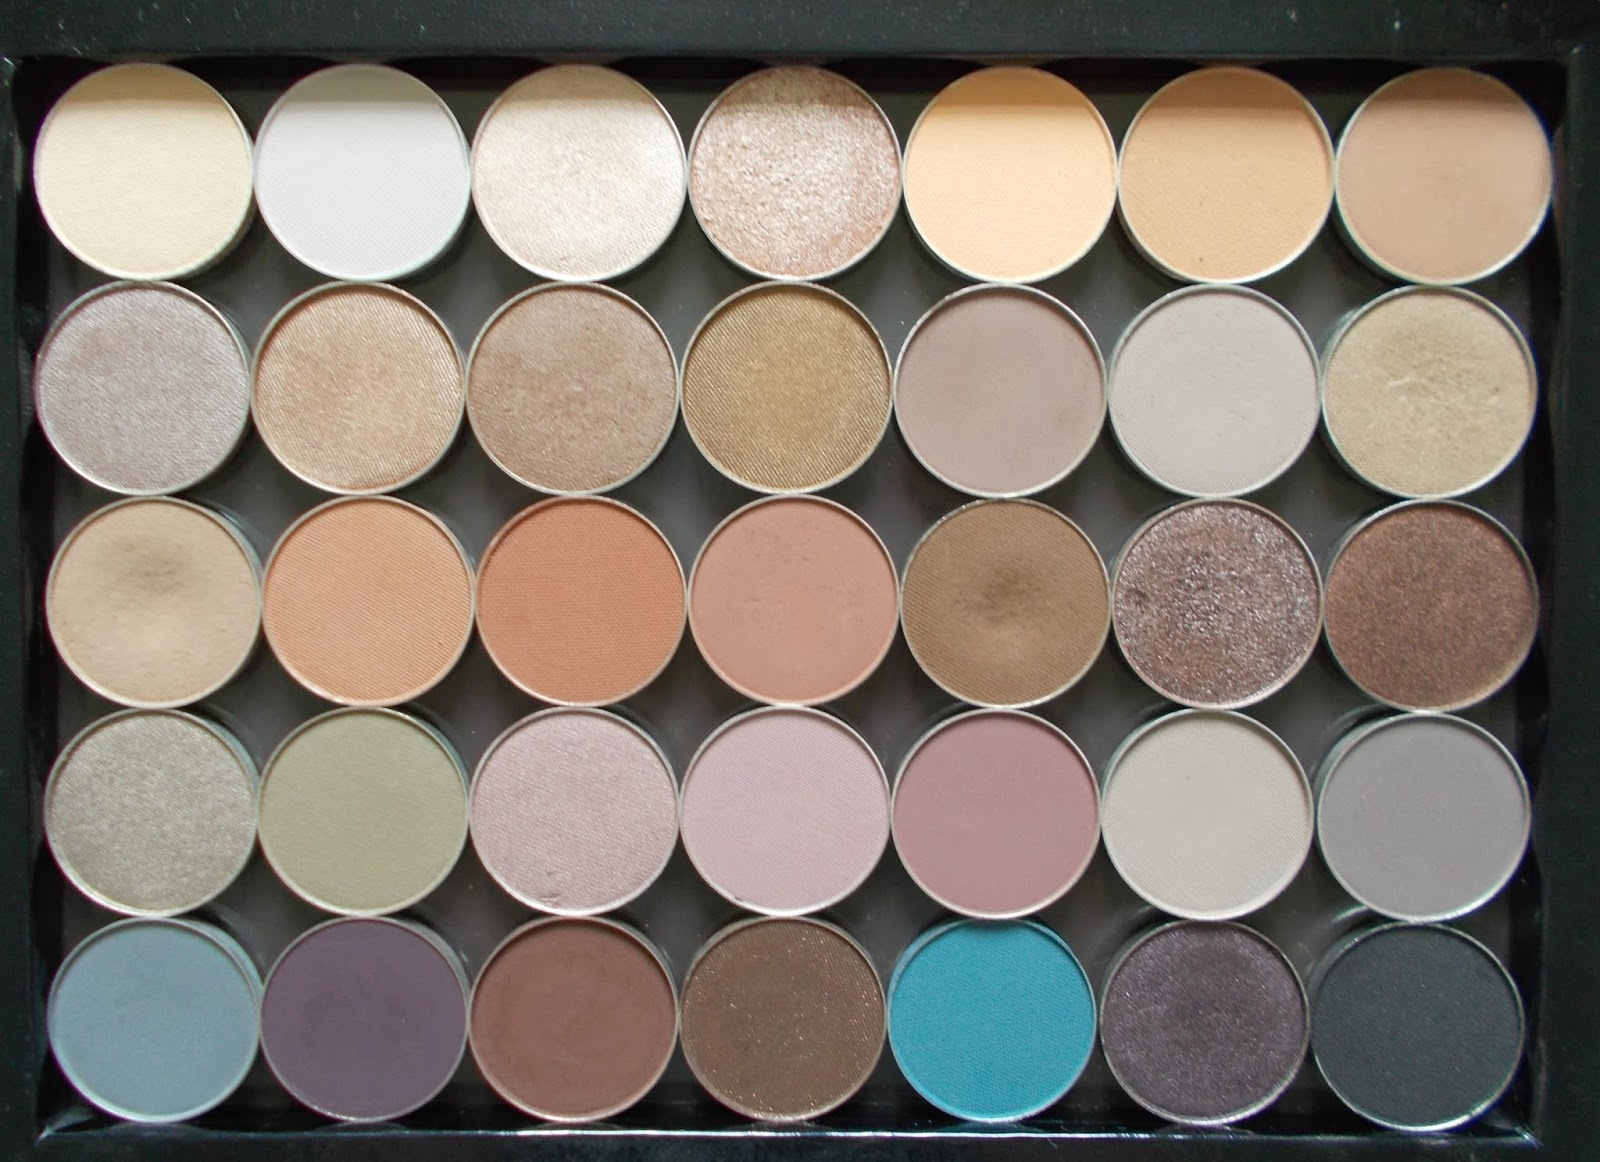 makeup geek collection eyeshadow pan extra large z palette neutral shades